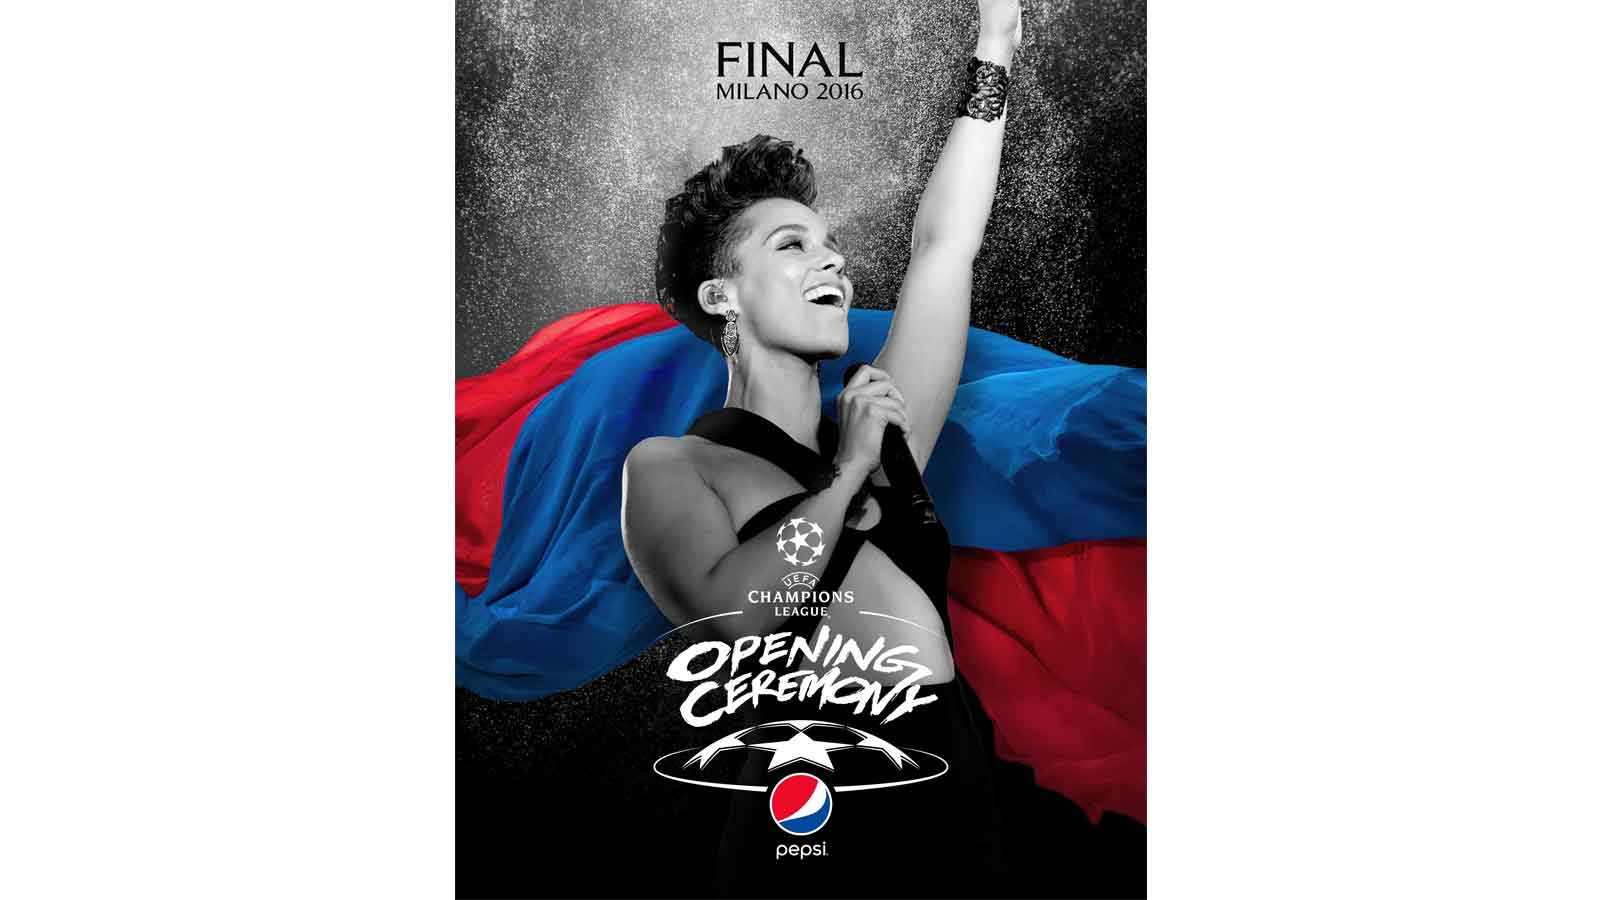 UEFA and Pepsi® bring first-ever epic live music to UEFA Champions League Final